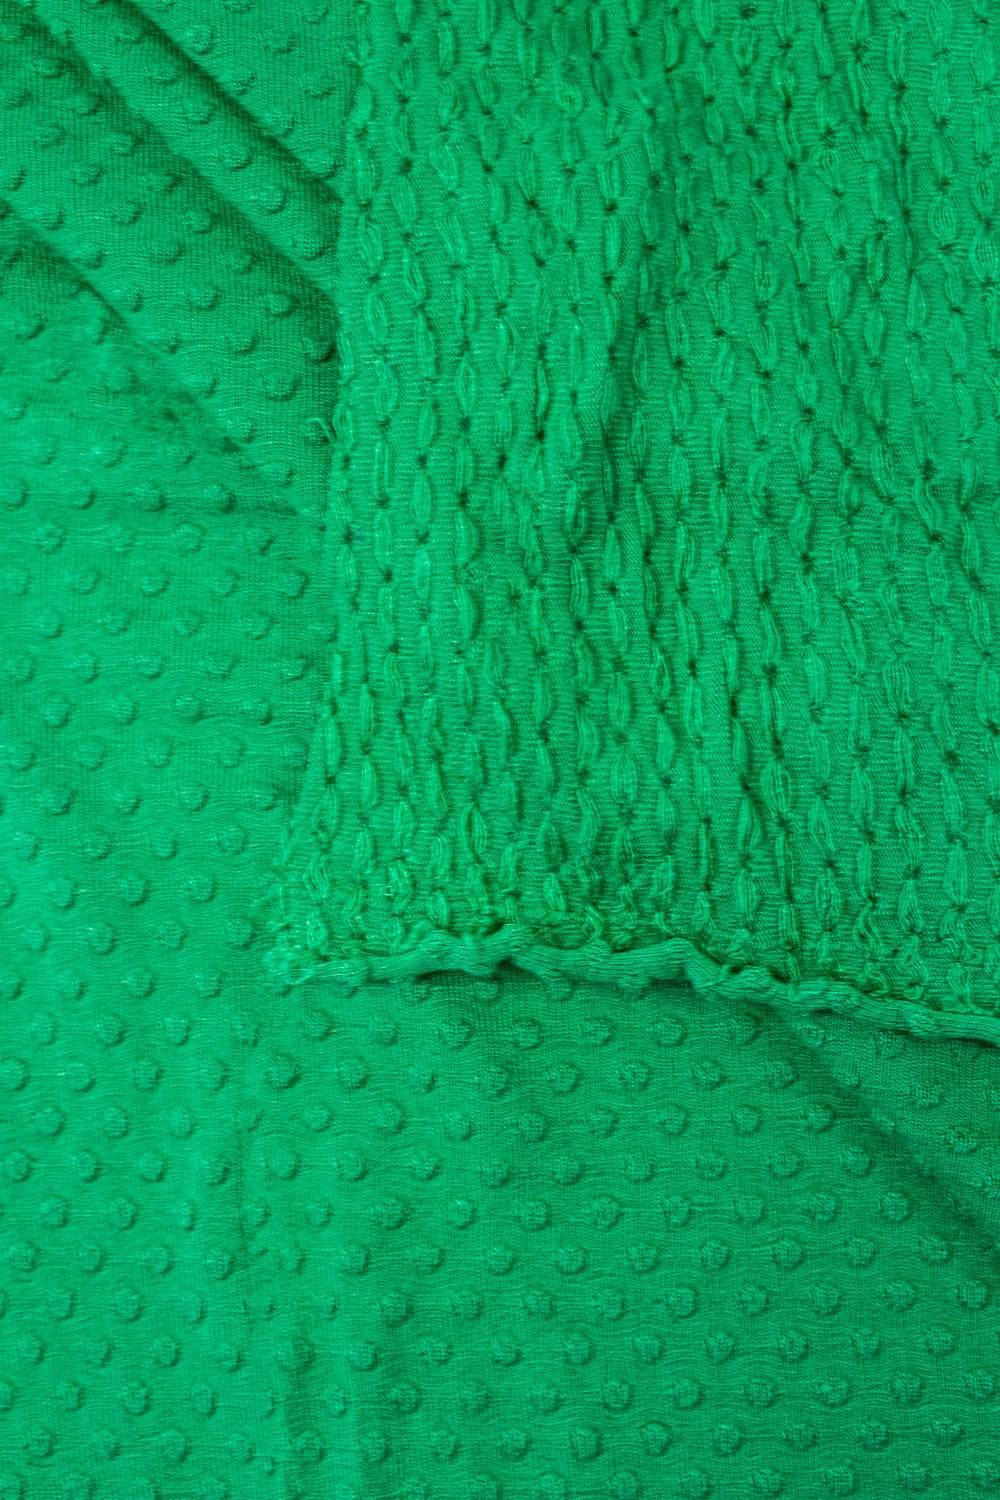 Knit - Viscose Jersey - Embossed - Green - 165 cm - 130 g/m2